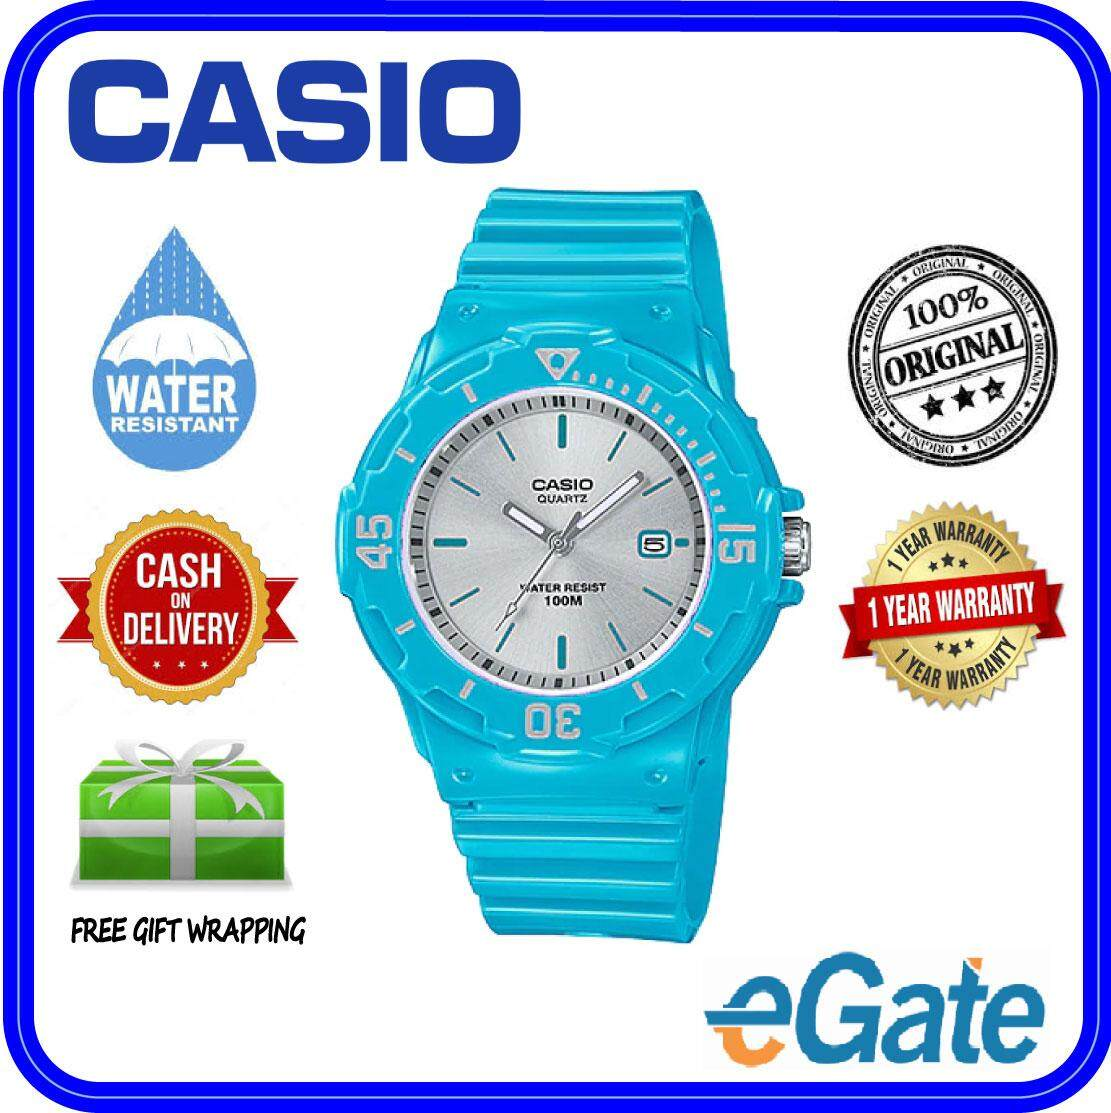 (2 YEARS WARRANTY) Casio LRW-200H-2E3V Kids & Ladies Analog Date Functioning Classic Light Blue Resin Strap Silver Case Original Casual Watch (LRW-200H) Malaysia